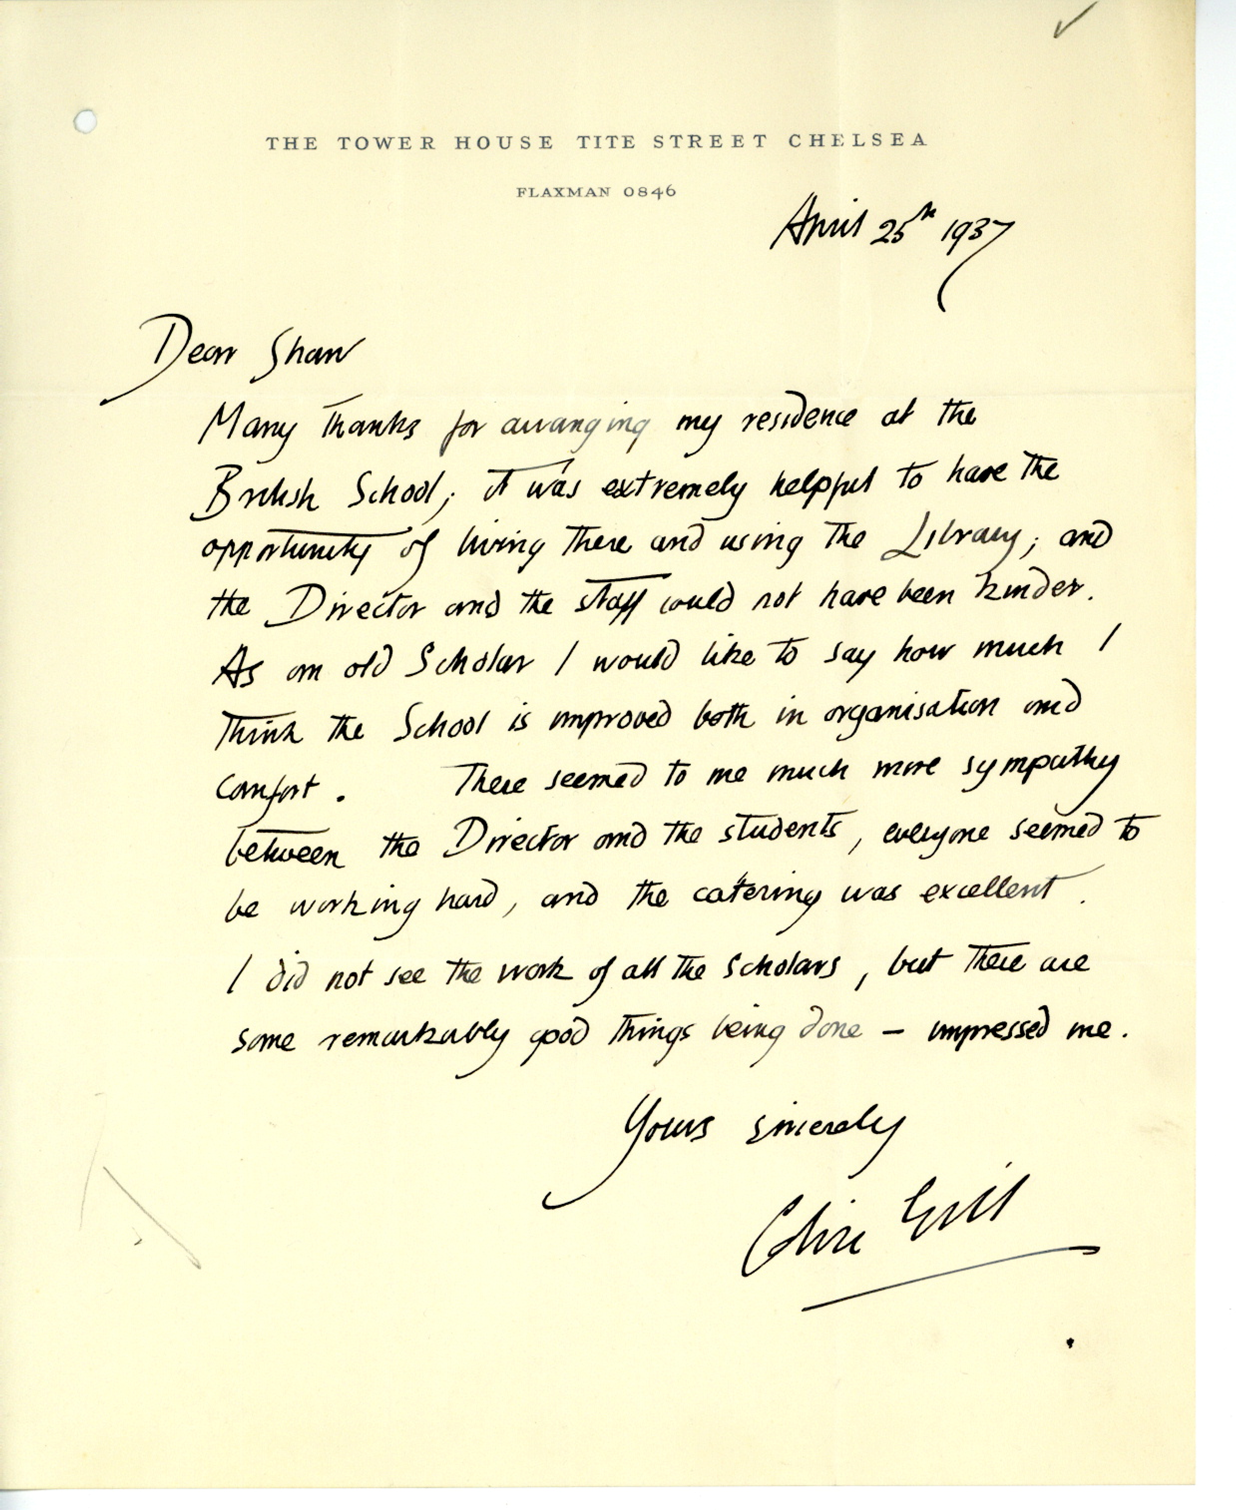 Colin Gill Collection, Letter from Gill to Shaw 1937, BSR Fine Arts ArchiveColin Gill Collection, Letter from Gill to Shaw 1937, BSR Fine Arts Archive